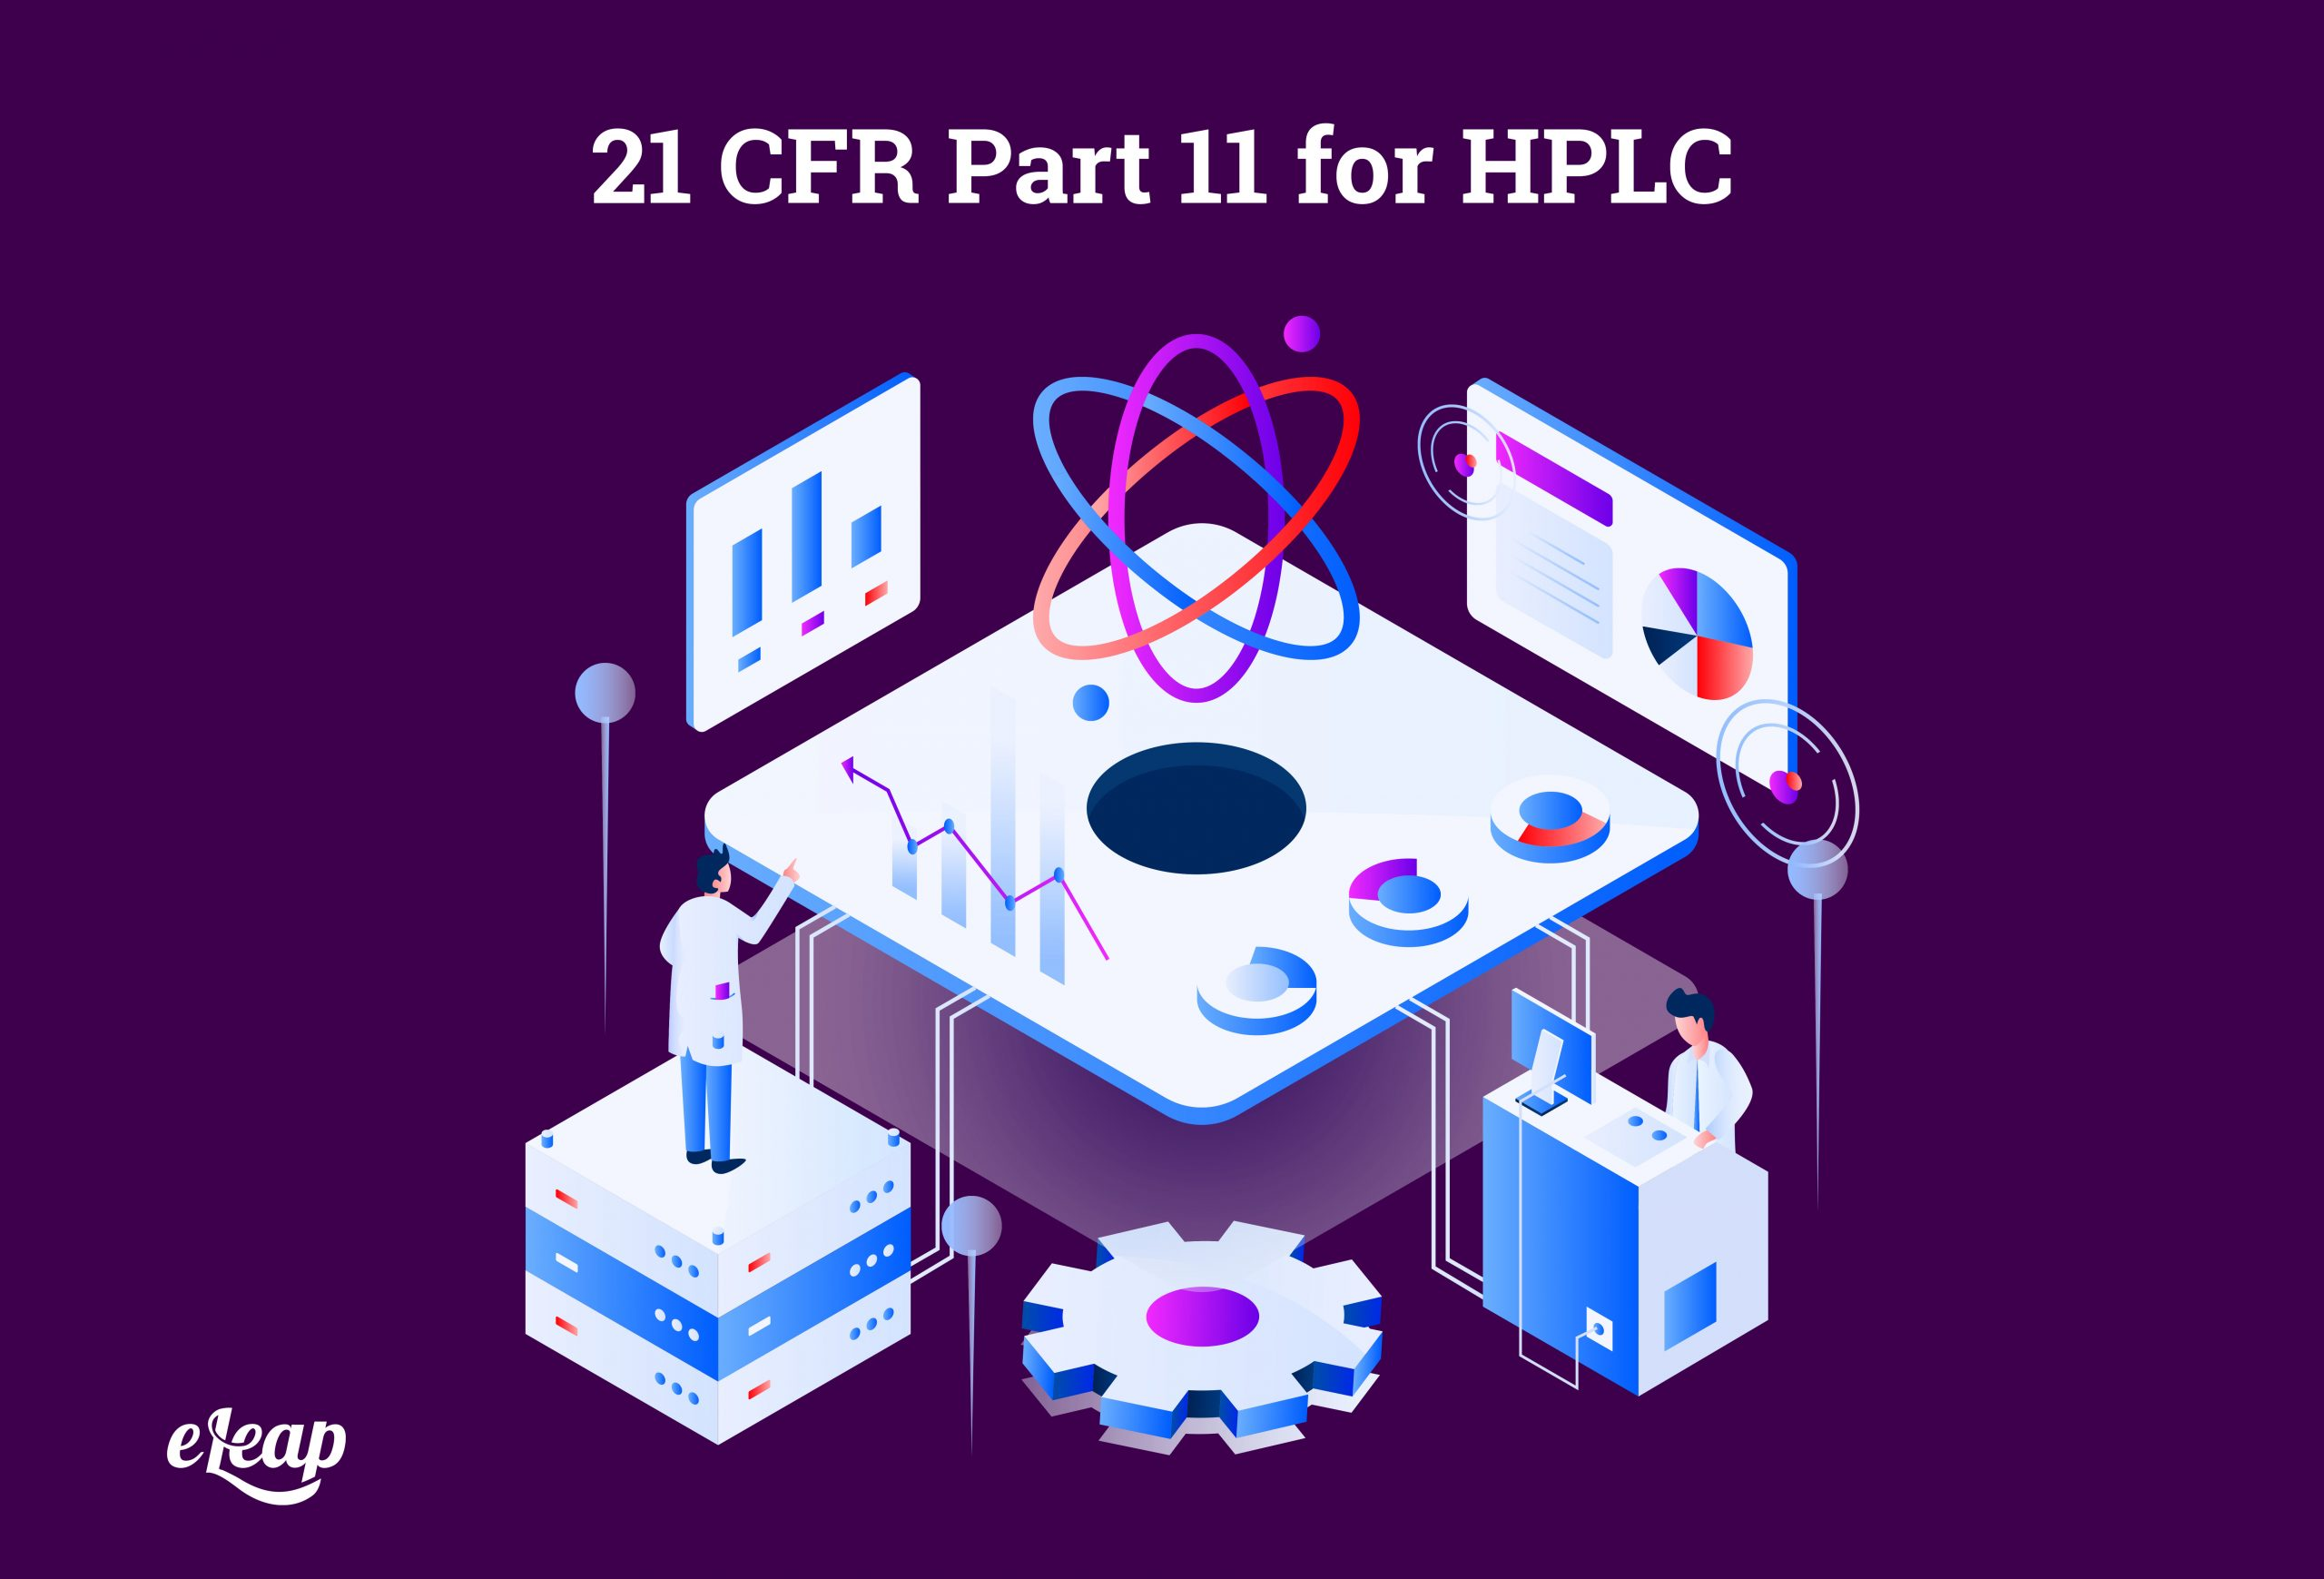 21 CFR Part 11 for HPLC